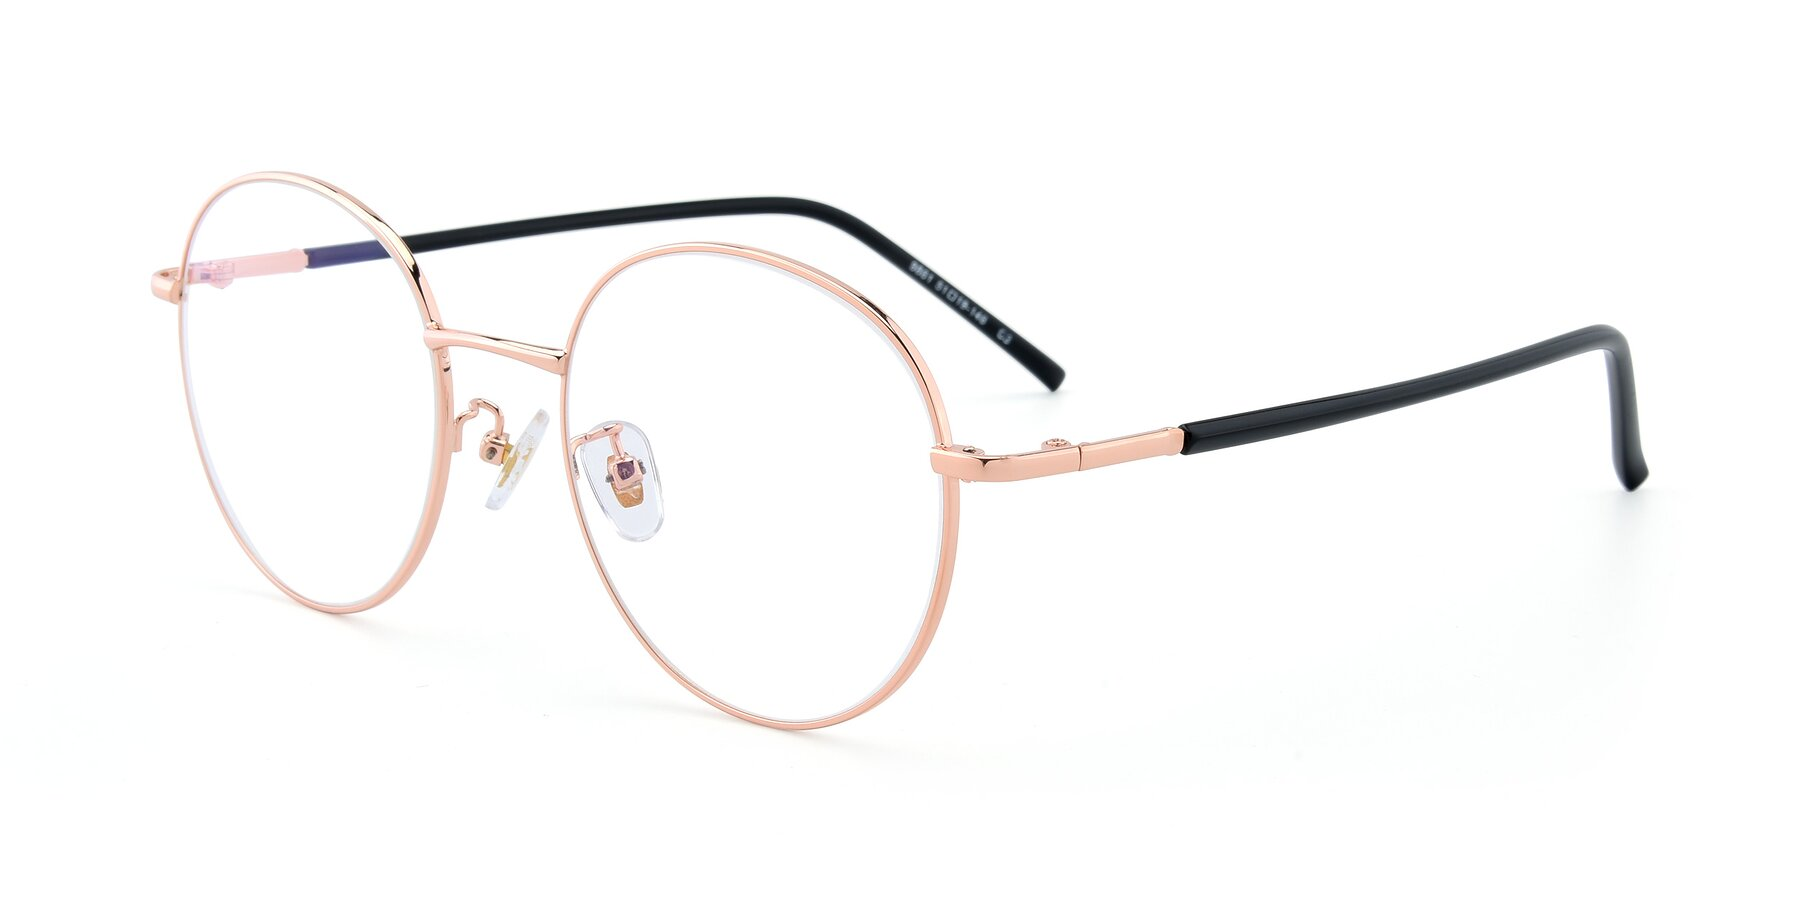 Angle of 9861 in Rose Gold with Clear Eyeglass Lenses